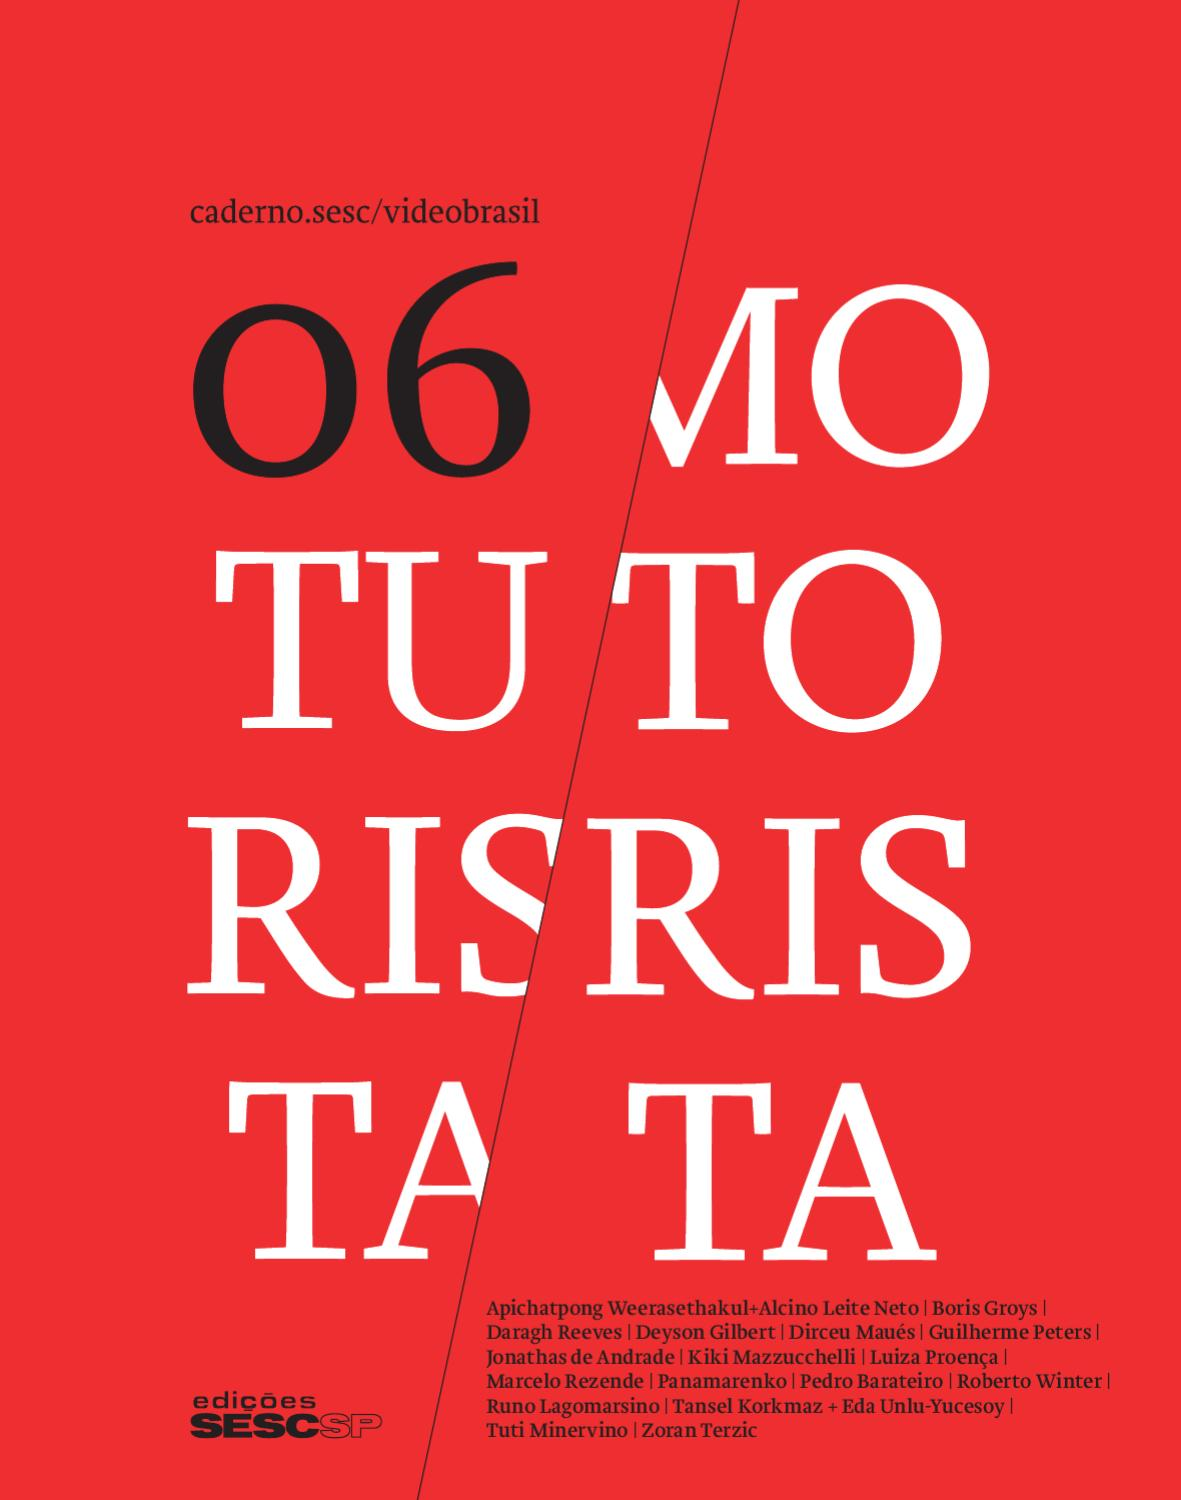 Sesc caderno videobrasil 6 turista motorista by open writings issuu fandeluxe Image collections